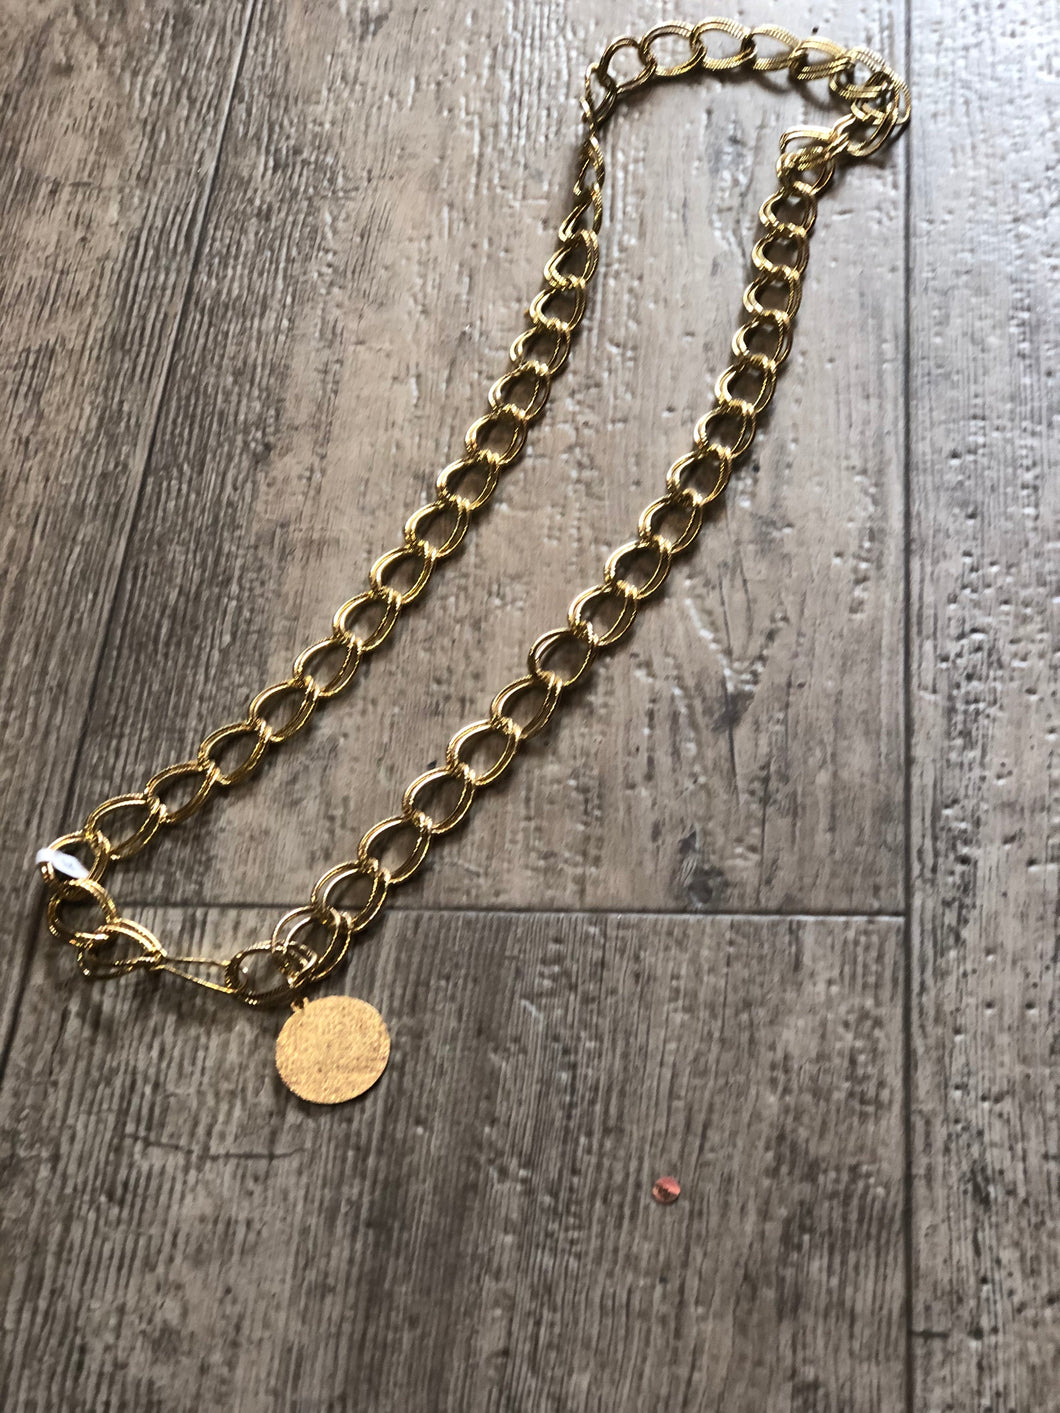 Vintage 80s Gold Chain Coin Belt | Belts - 80s 90s Retro Vintage Clothing | Spark Pretty